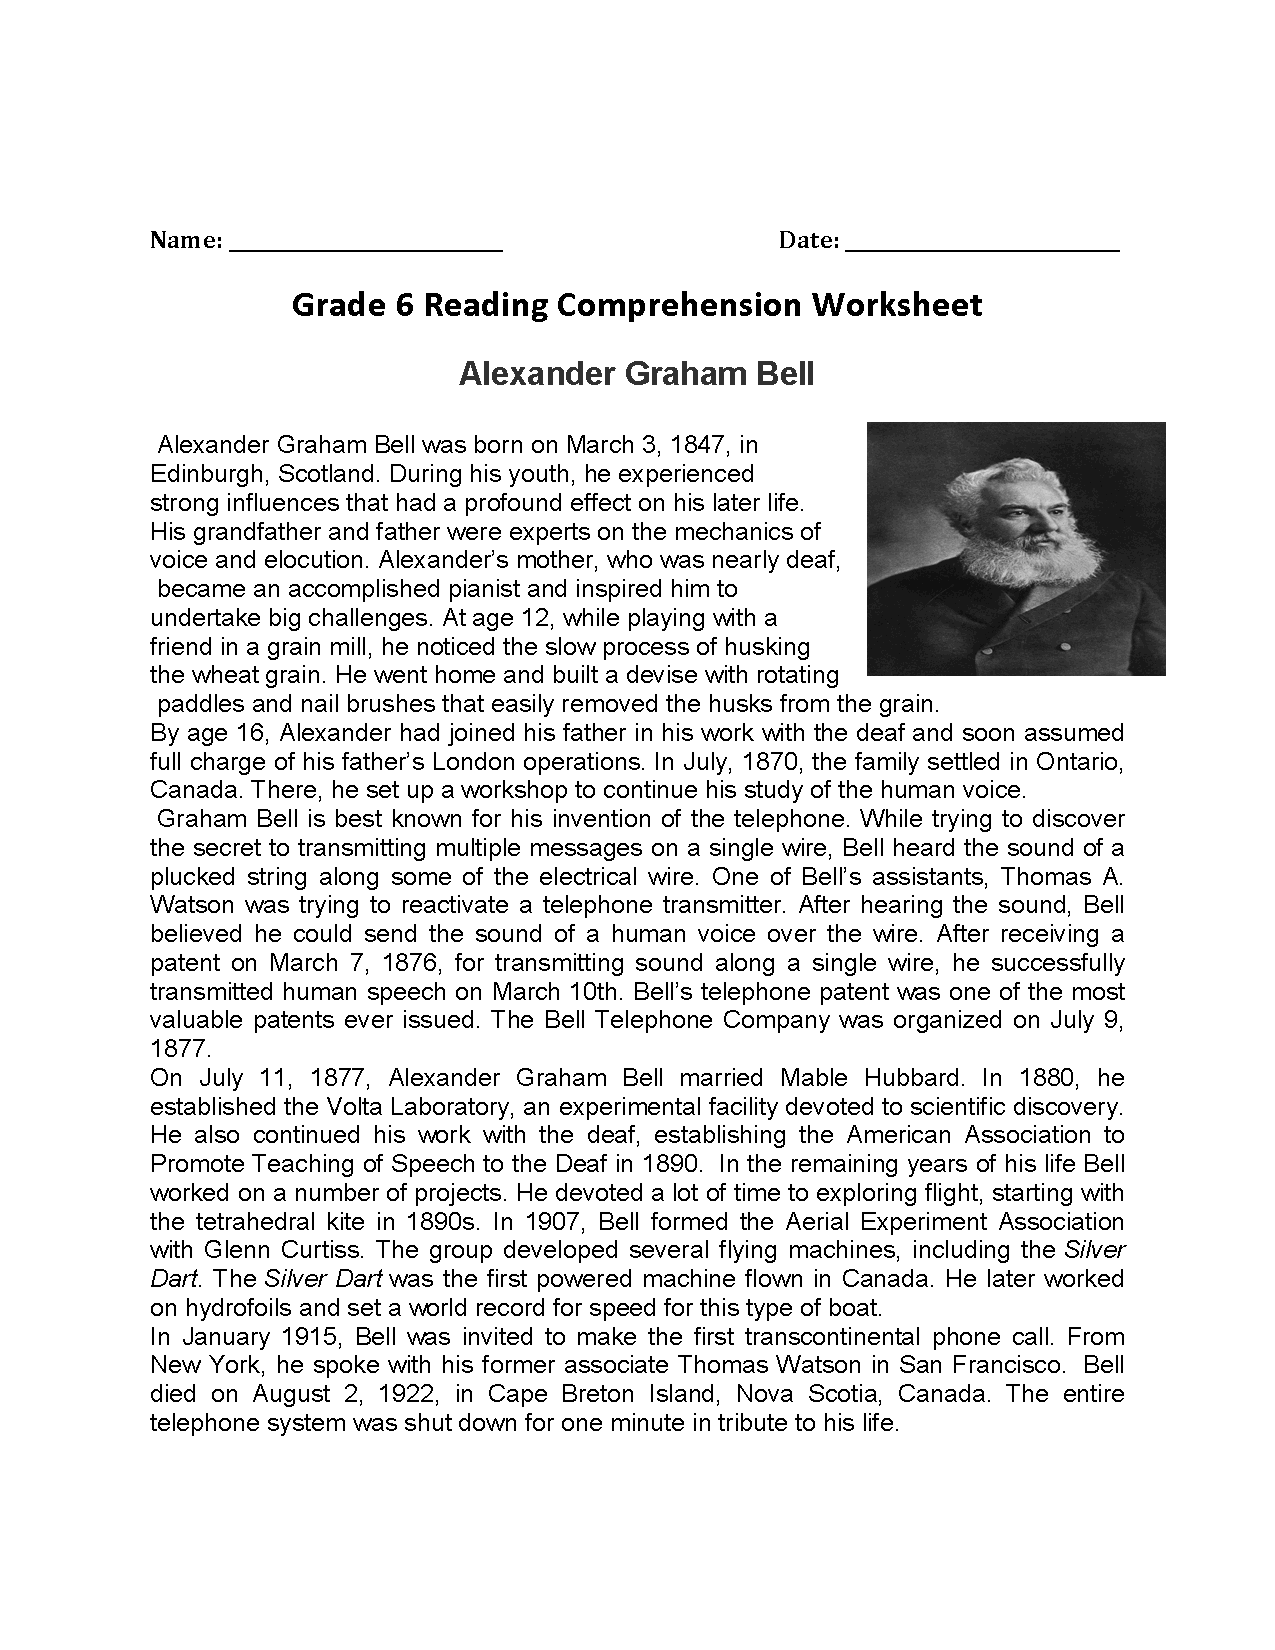 Worksheet Free Printable 6th Grade Reading Comprehension Worksheets Grass Fedjp Worksheet